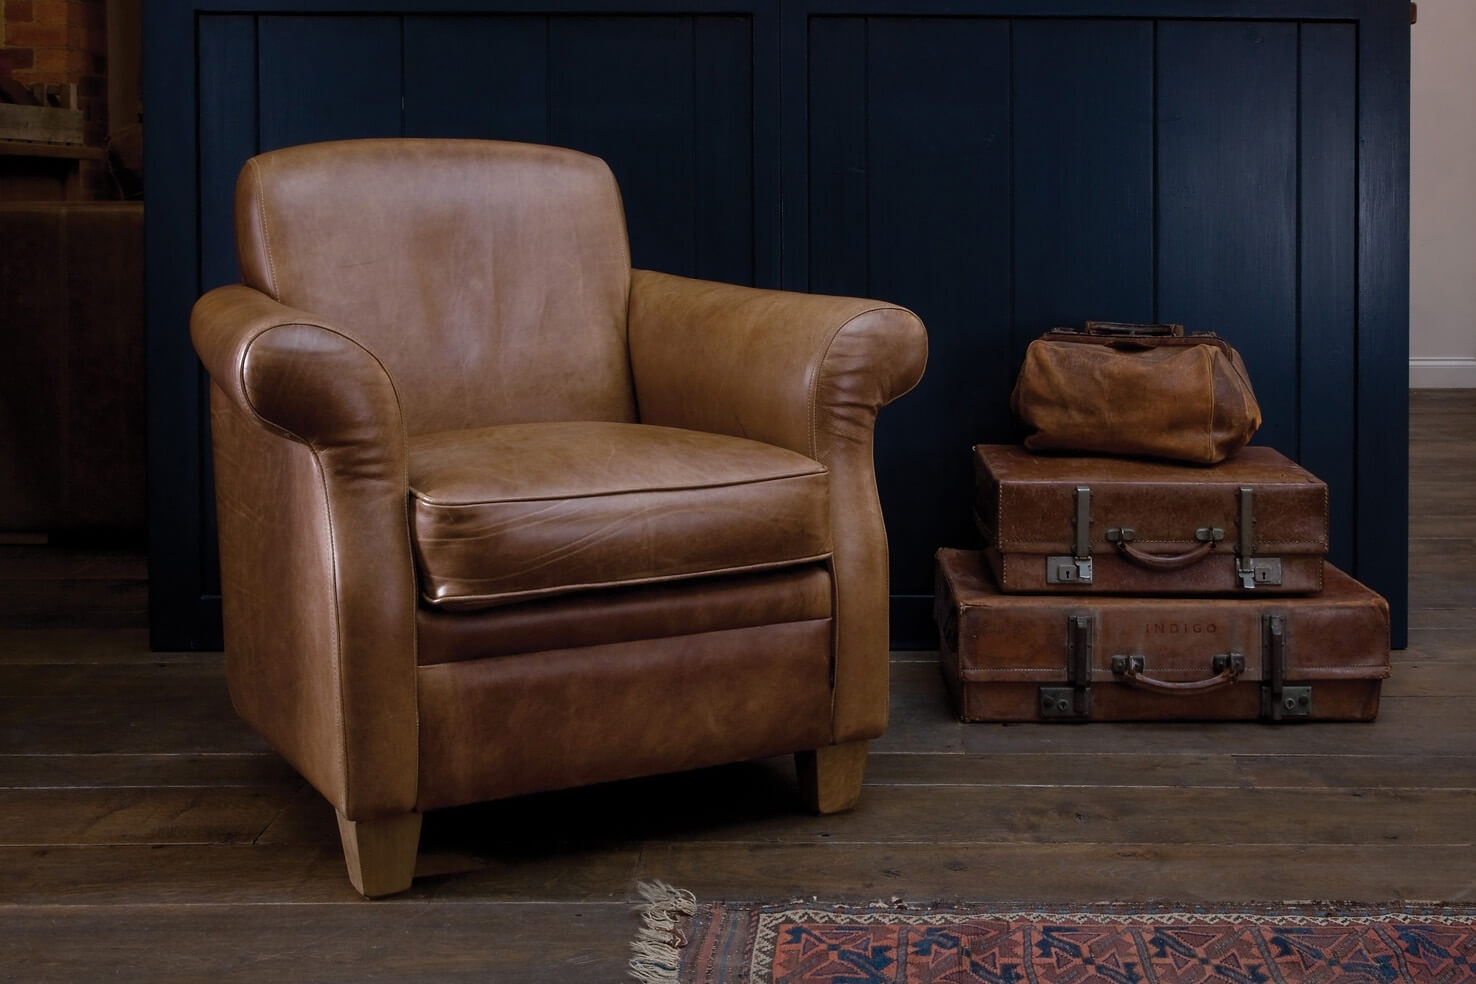 The Vintage Leather Armchair Indigo Furniture Pertaining To Vintage Leather Armchairs (Image 10 of 15)